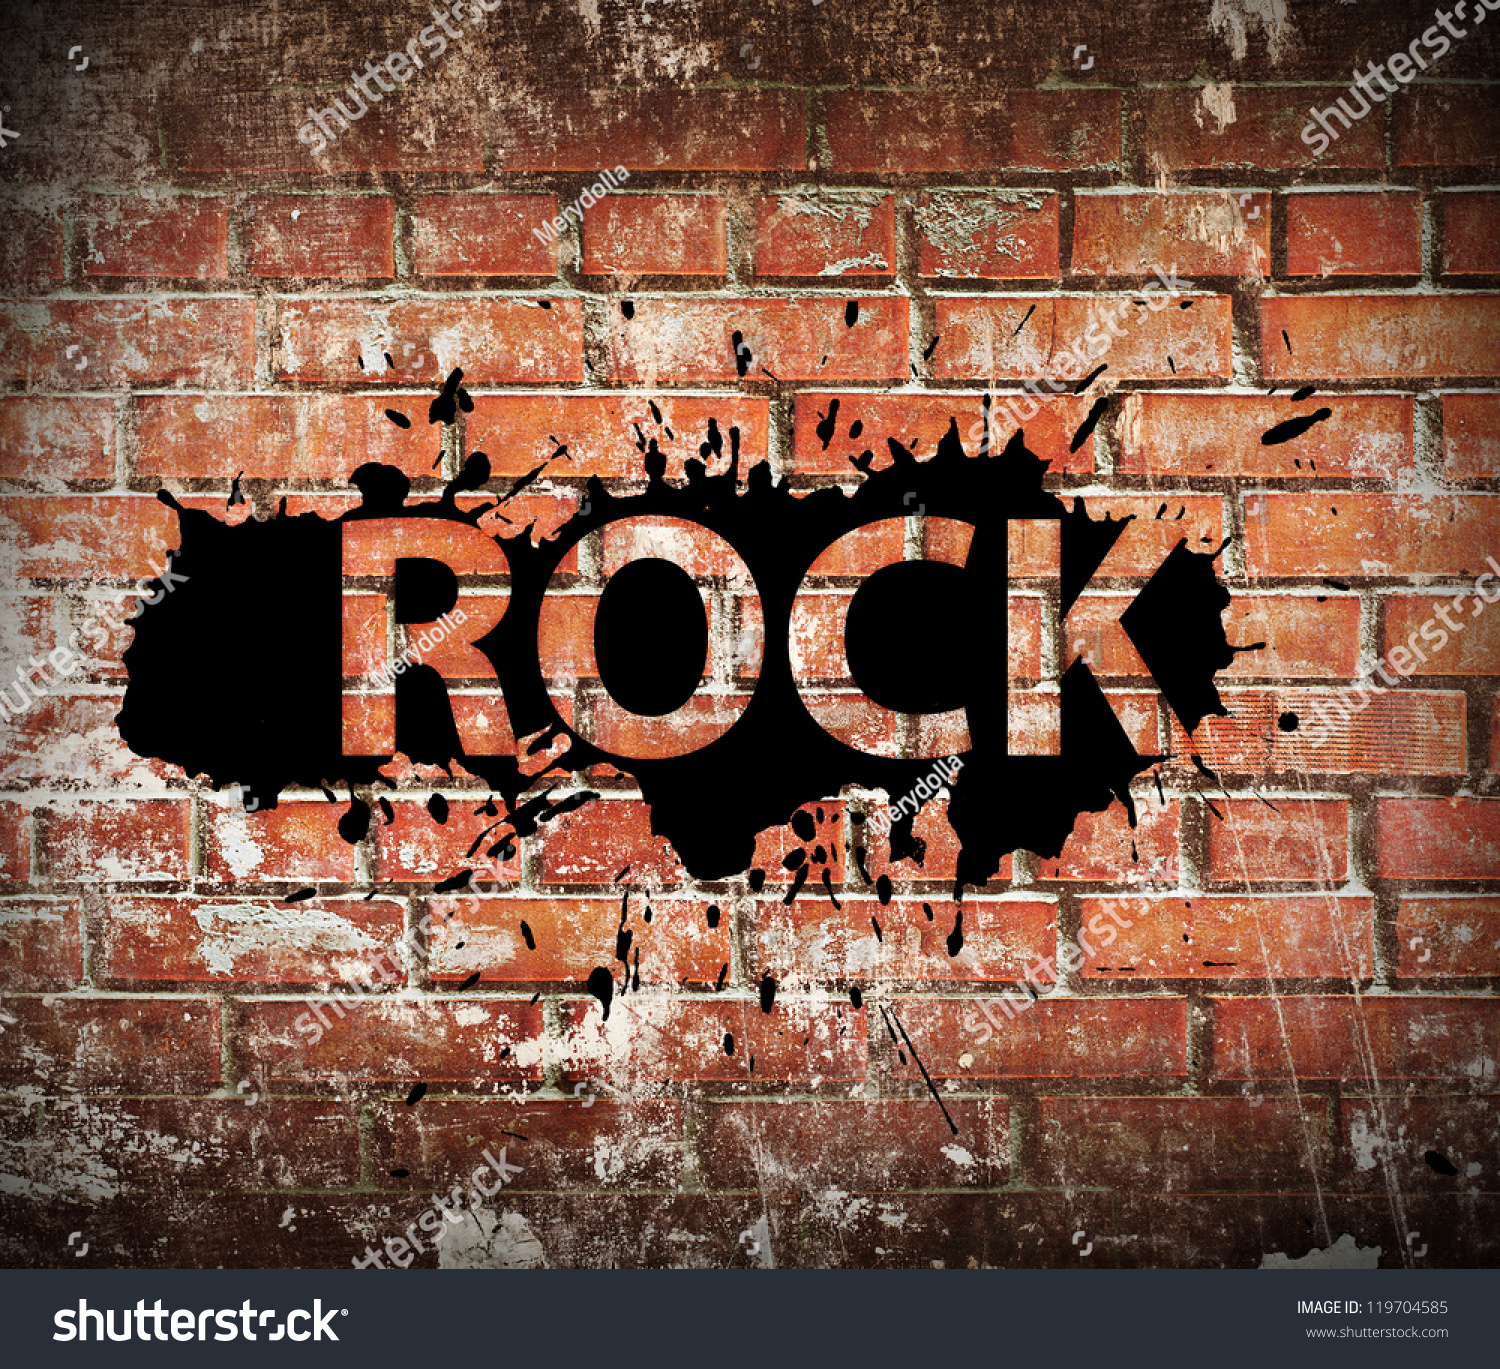 grunge rock music poster on red brick wall stock photo 119704585 shutterstock. Black Bedroom Furniture Sets. Home Design Ideas